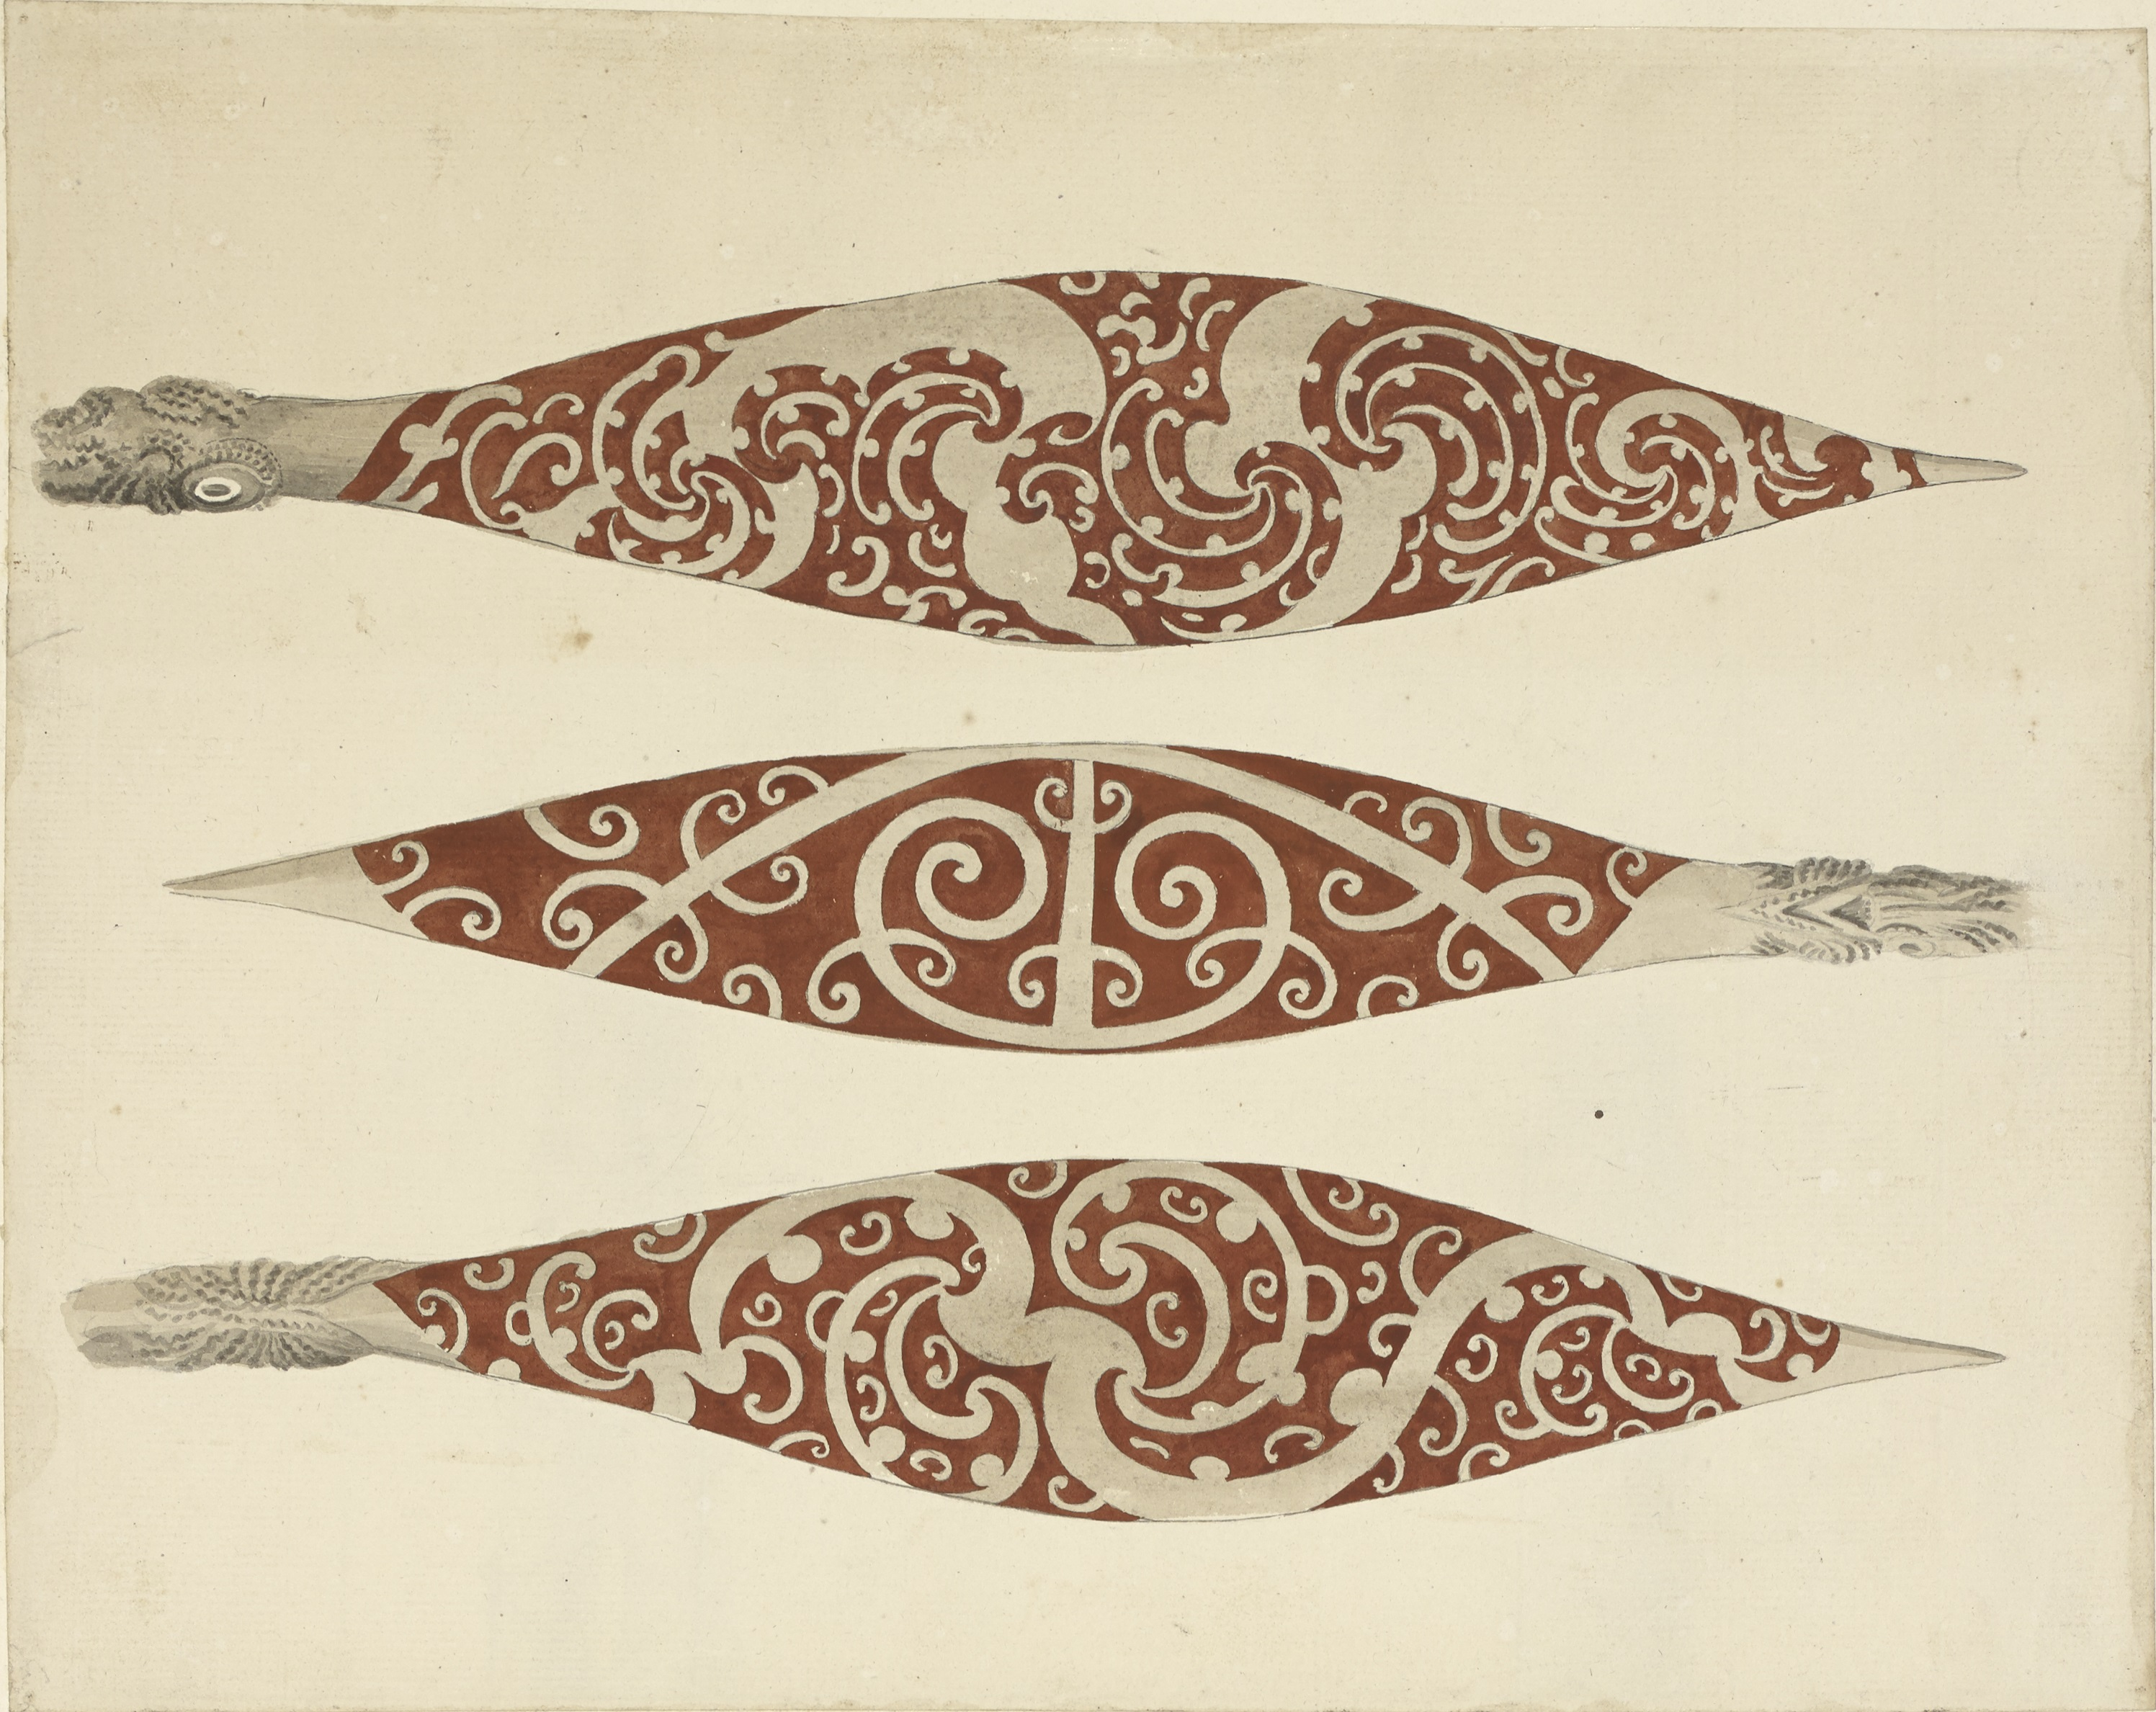 New Zealand Paddles, from A Collection of Drawings made in the Countries visited by Captain Cook on his First Voyage, 1768-1771 (Add. 23920)